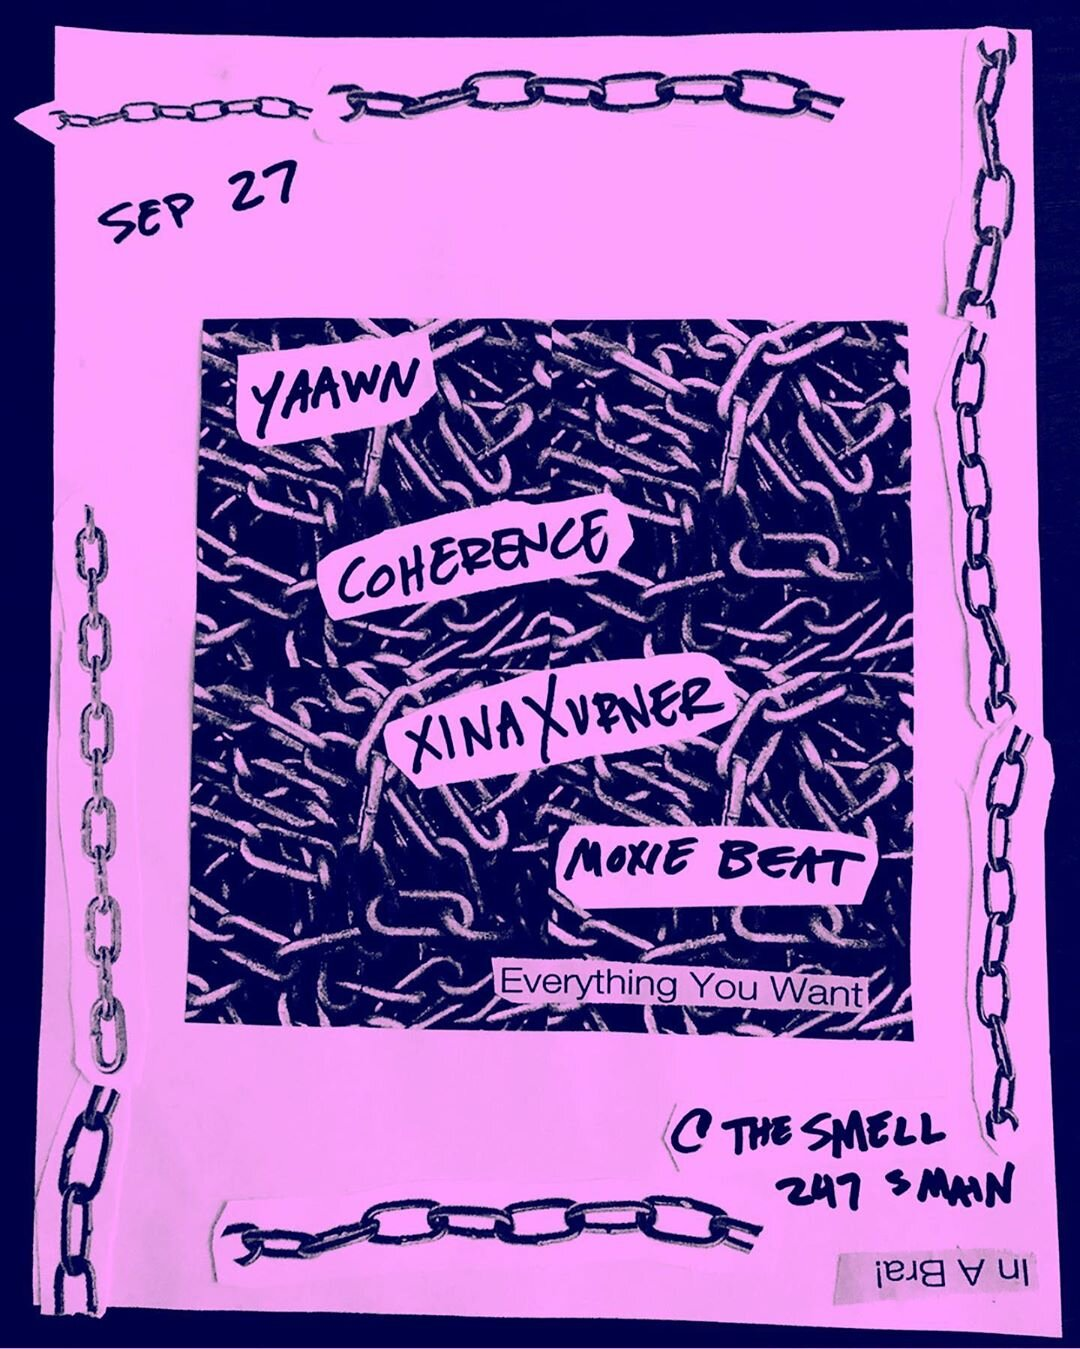 SEPT. 27, 2019  @ THE SMELL  W/  COHERENCE  YAAWN  MOXIE BEAT  *  ALL AGES!